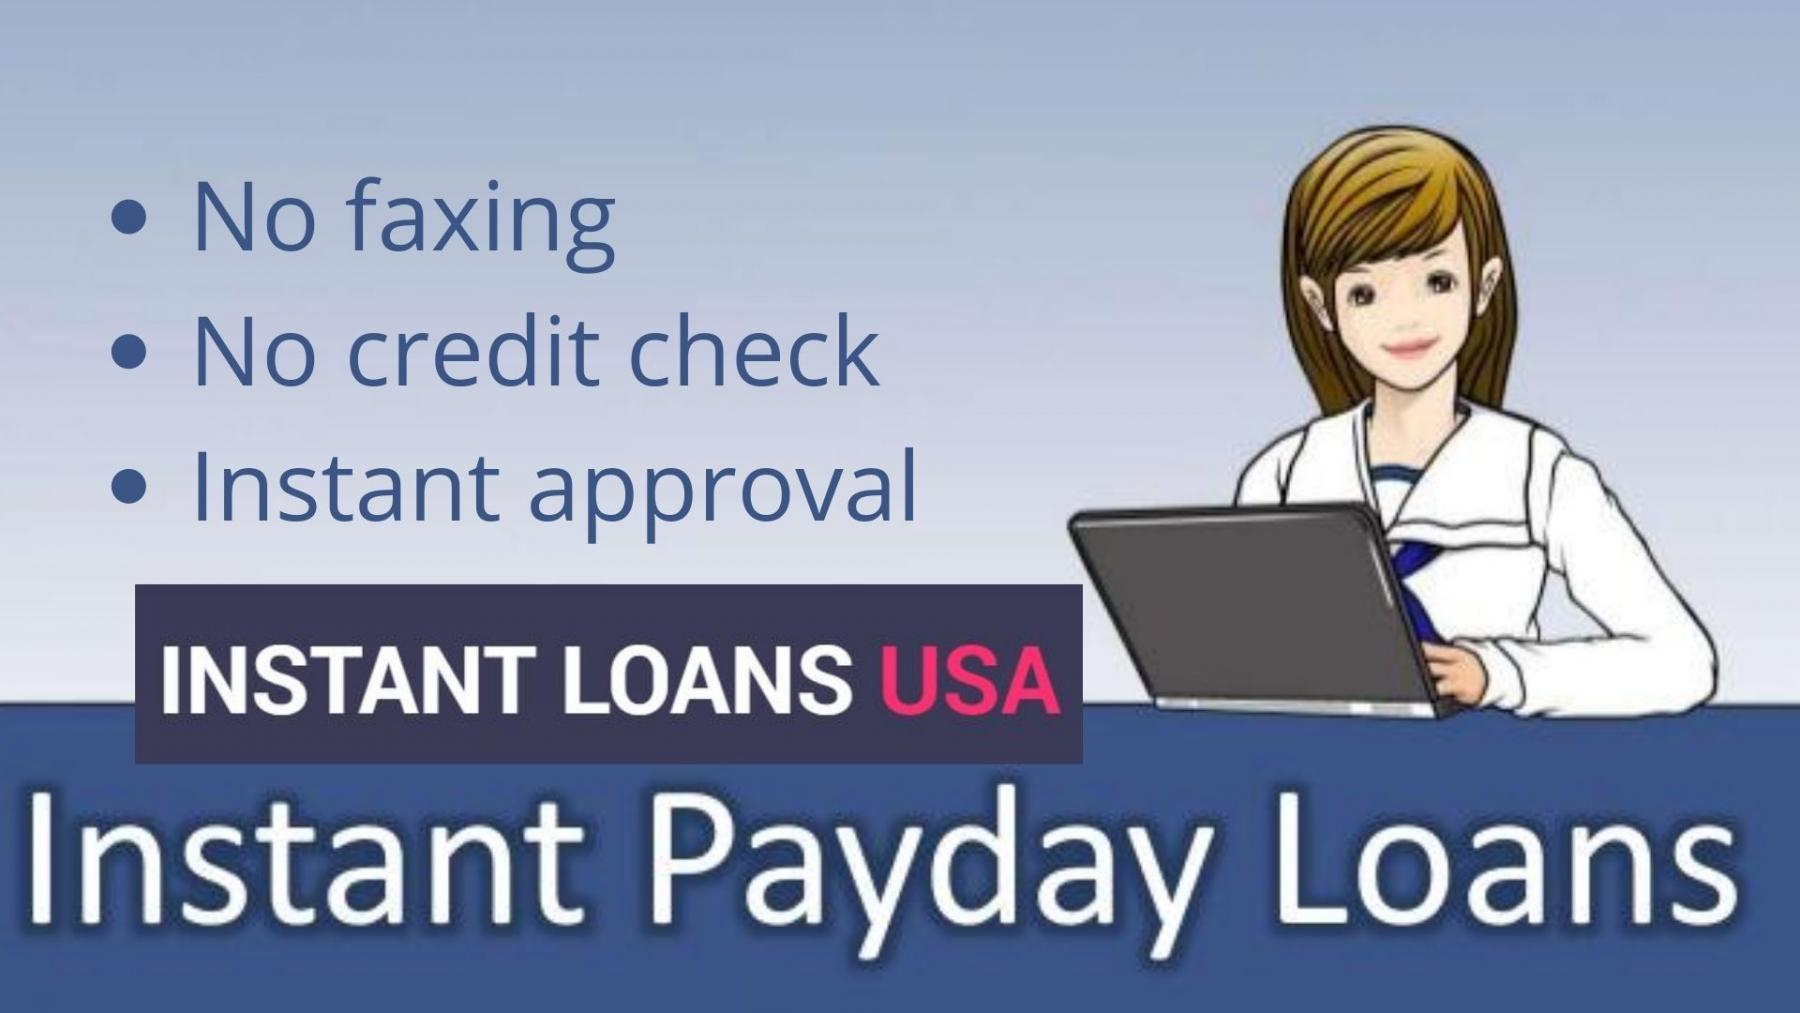 payday loans online no credit check instant approval no faxing